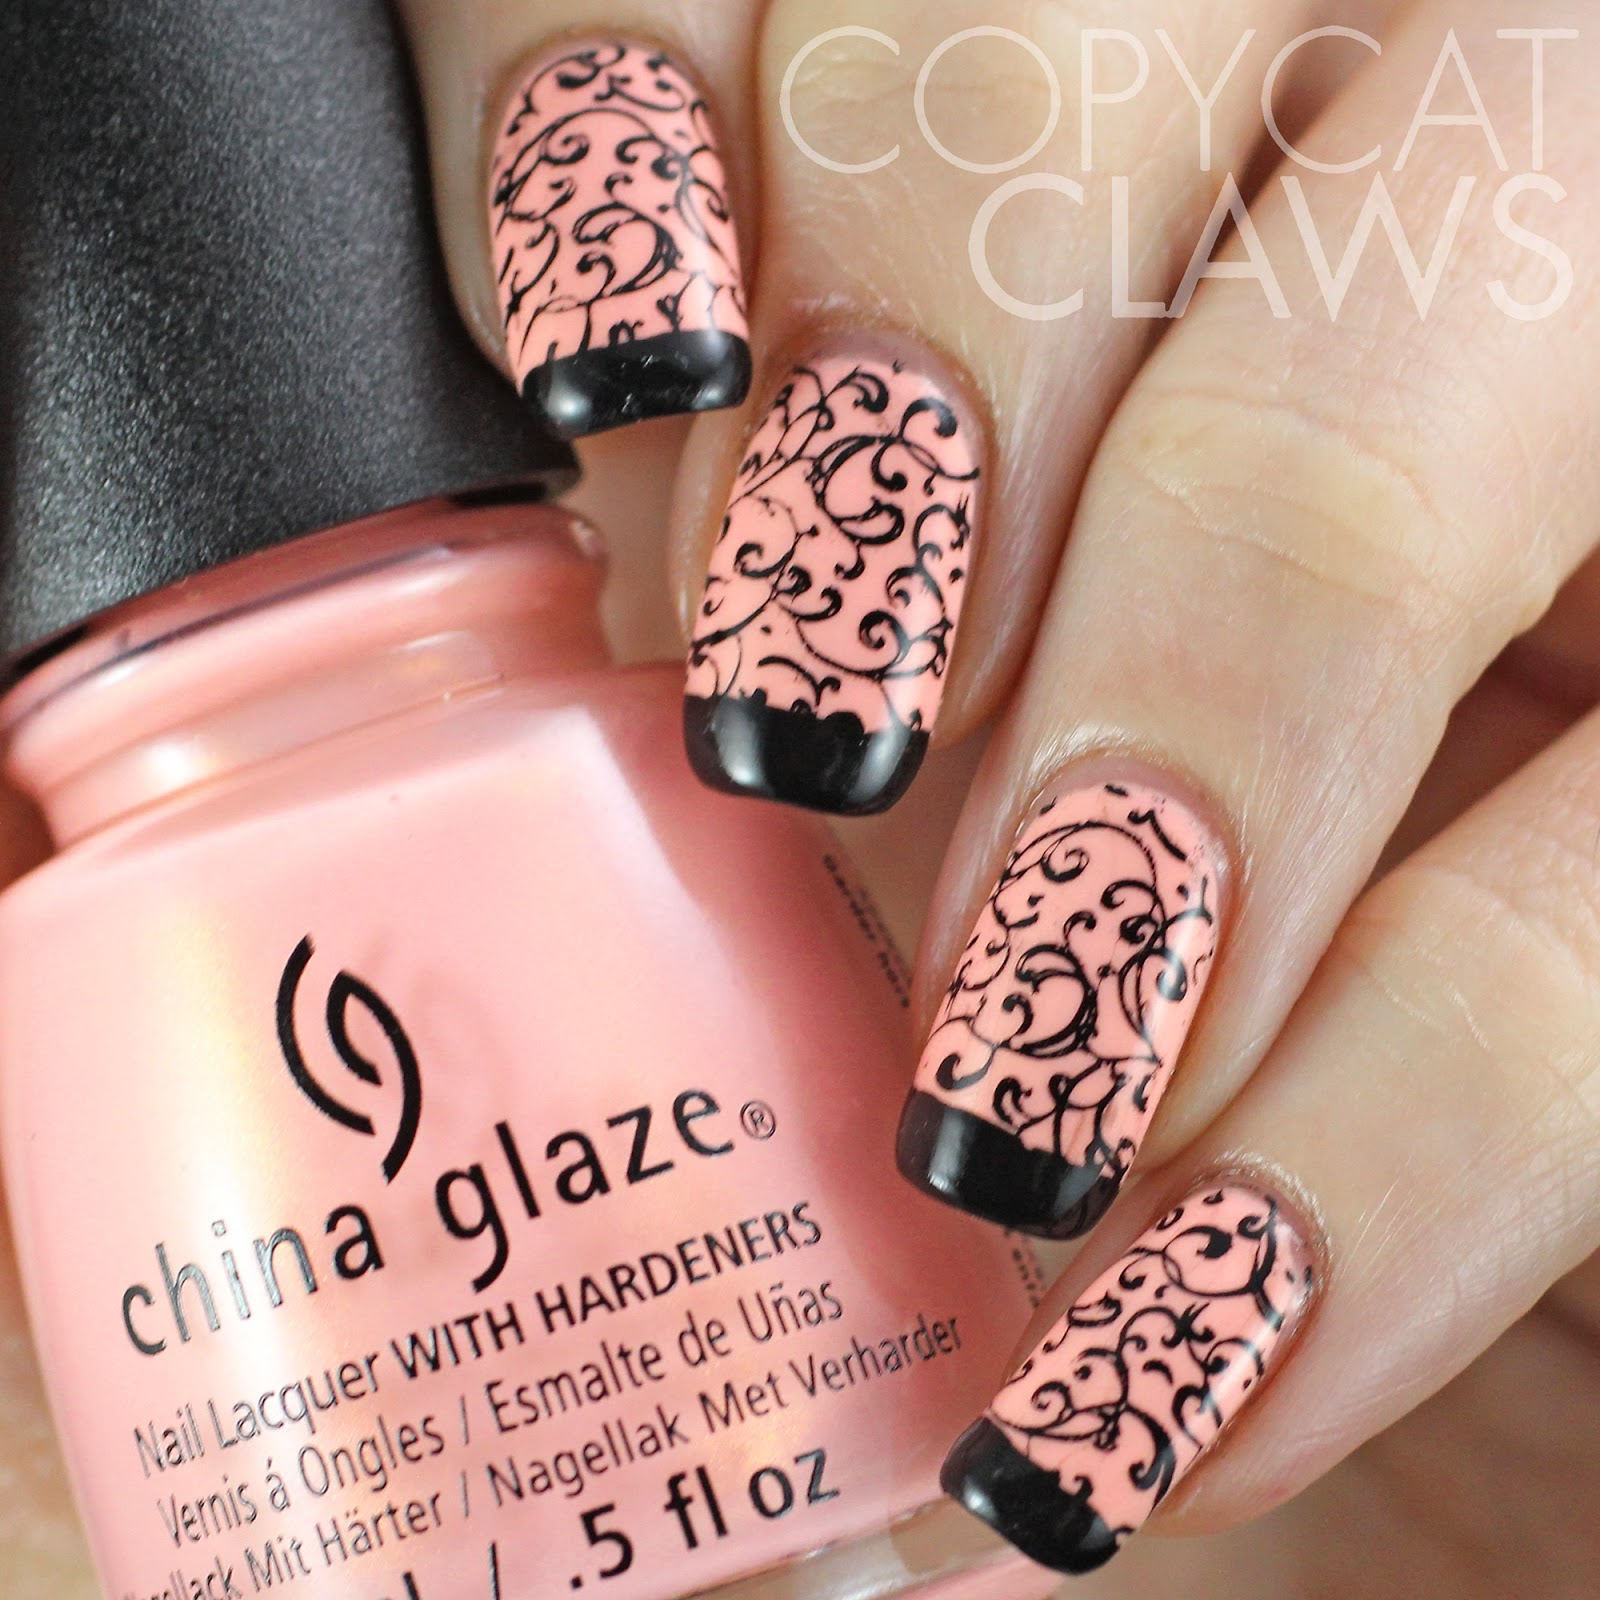 Copycat Claws: Sunday Stamping - Pink and Black Nails